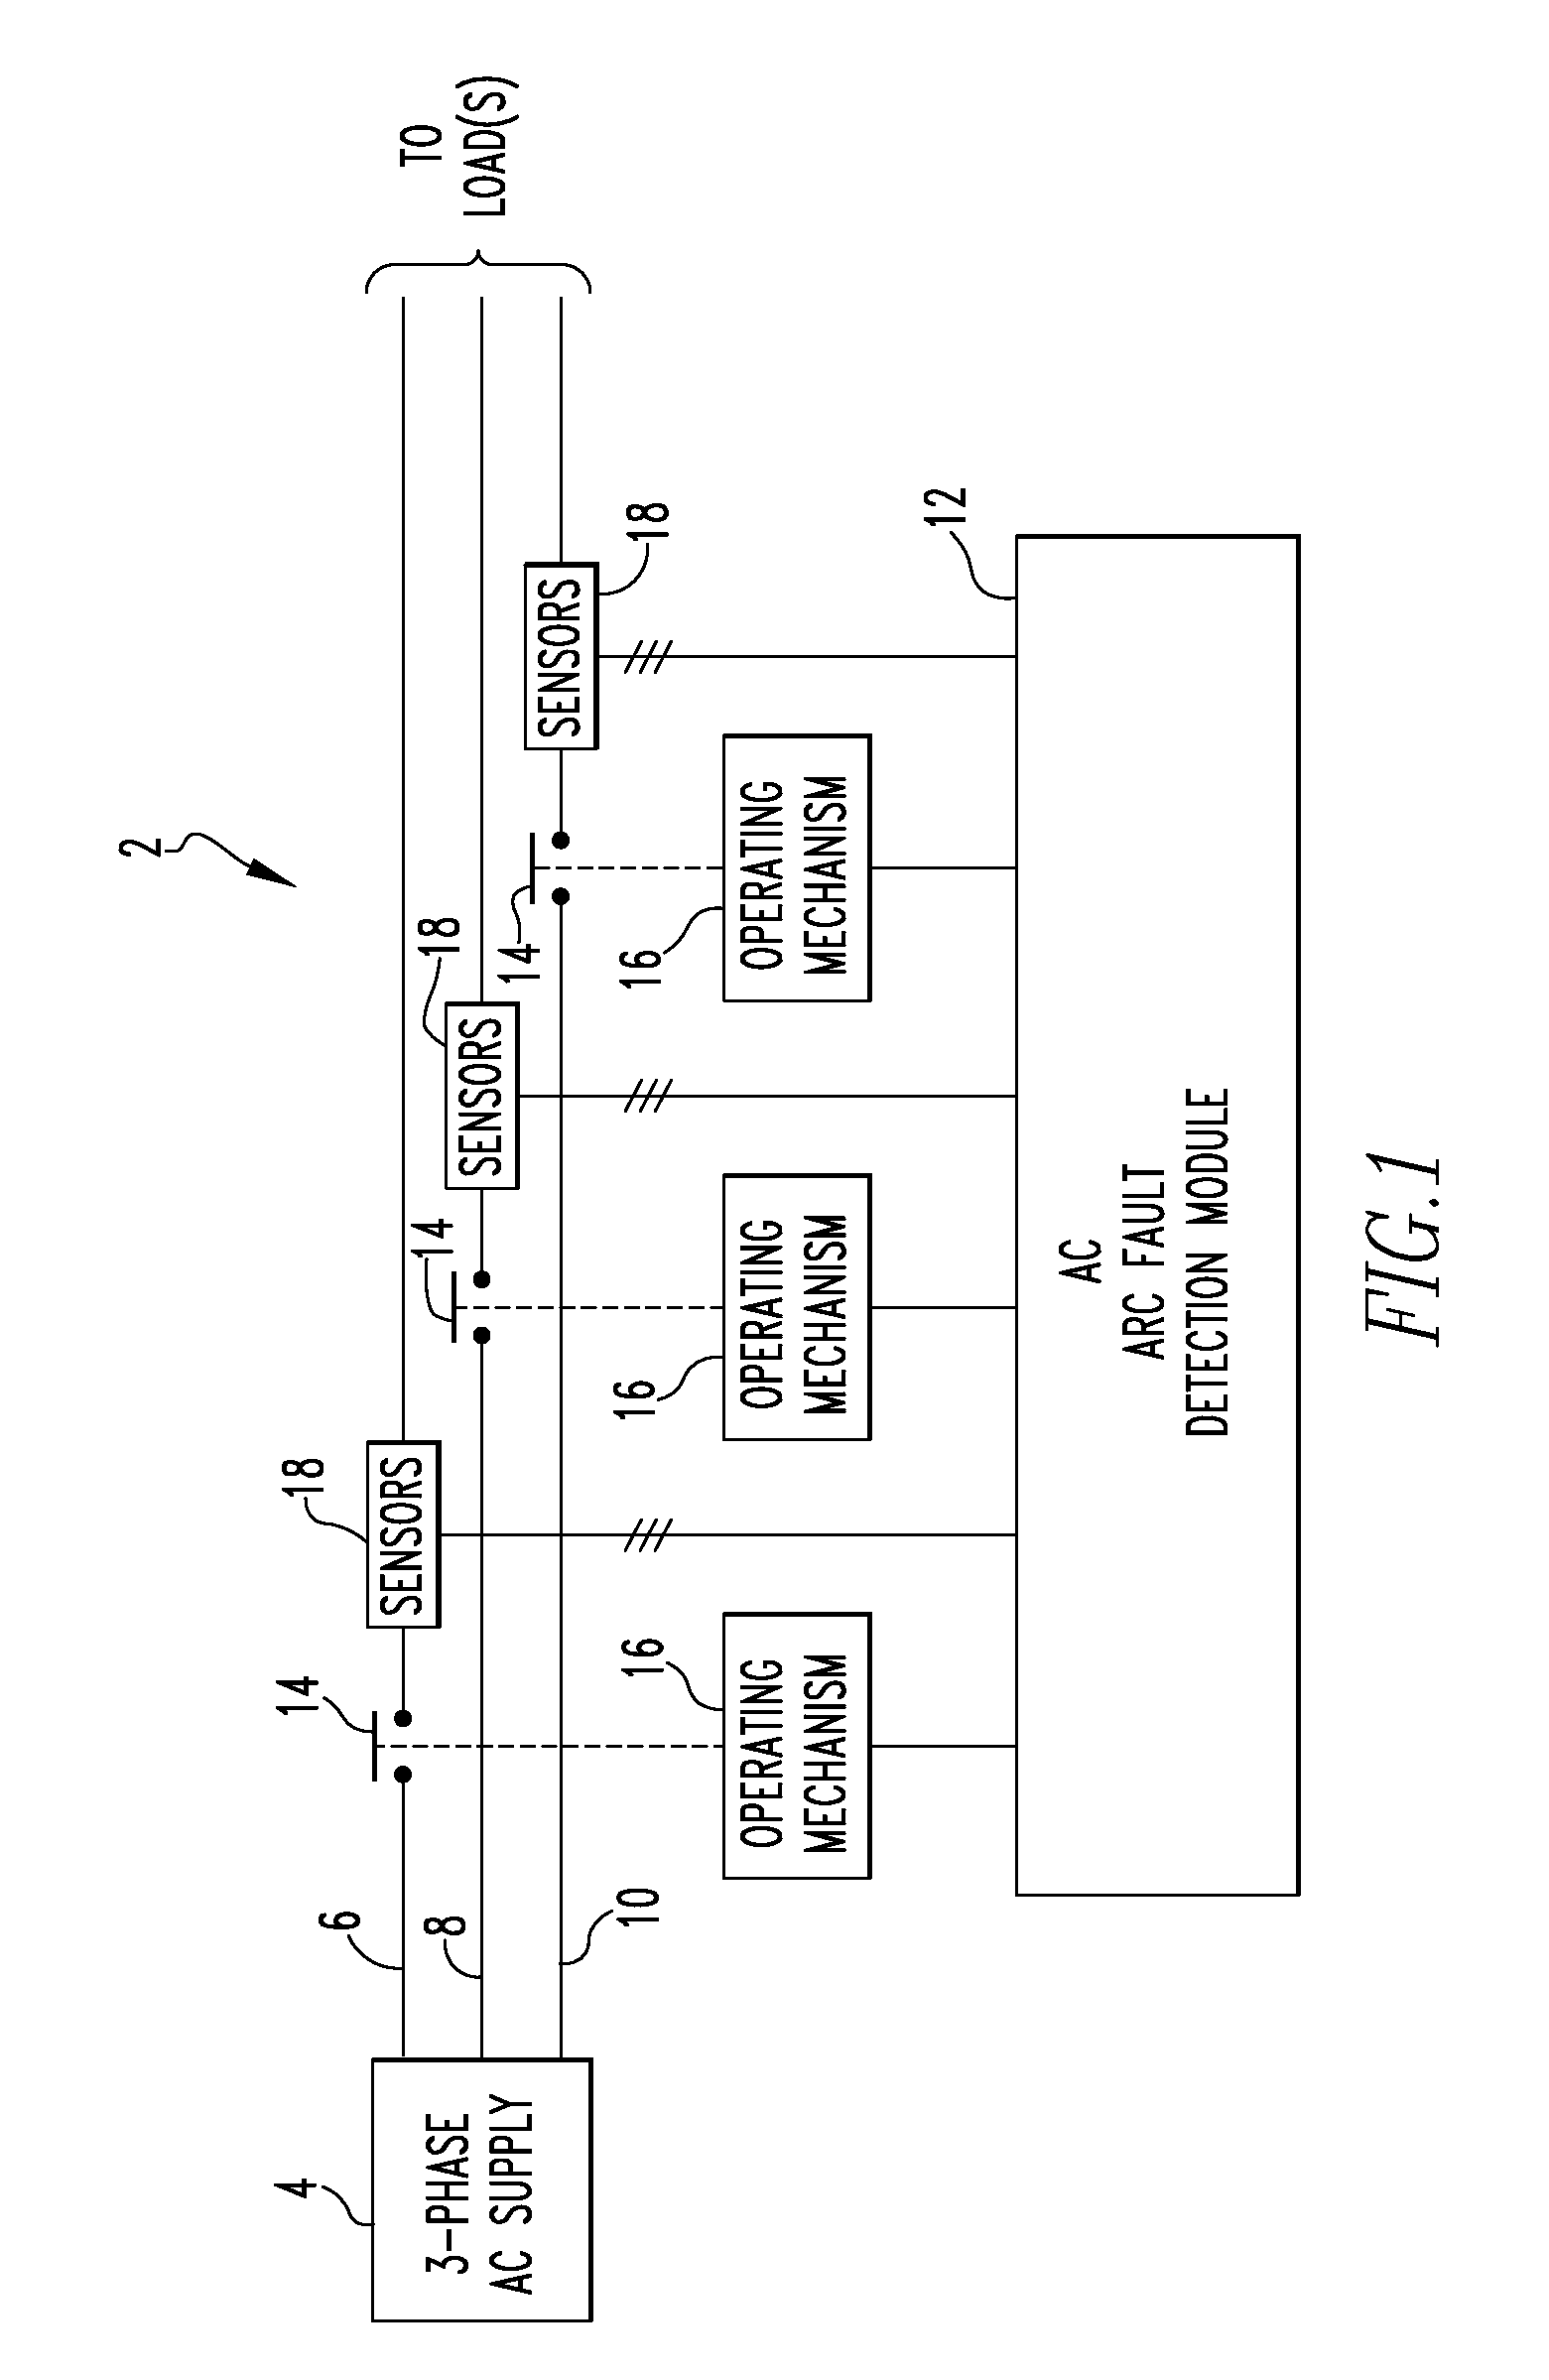 hight resolution of us9768605b2 arc fault detection system and method and circuit interrupter employing same google patents